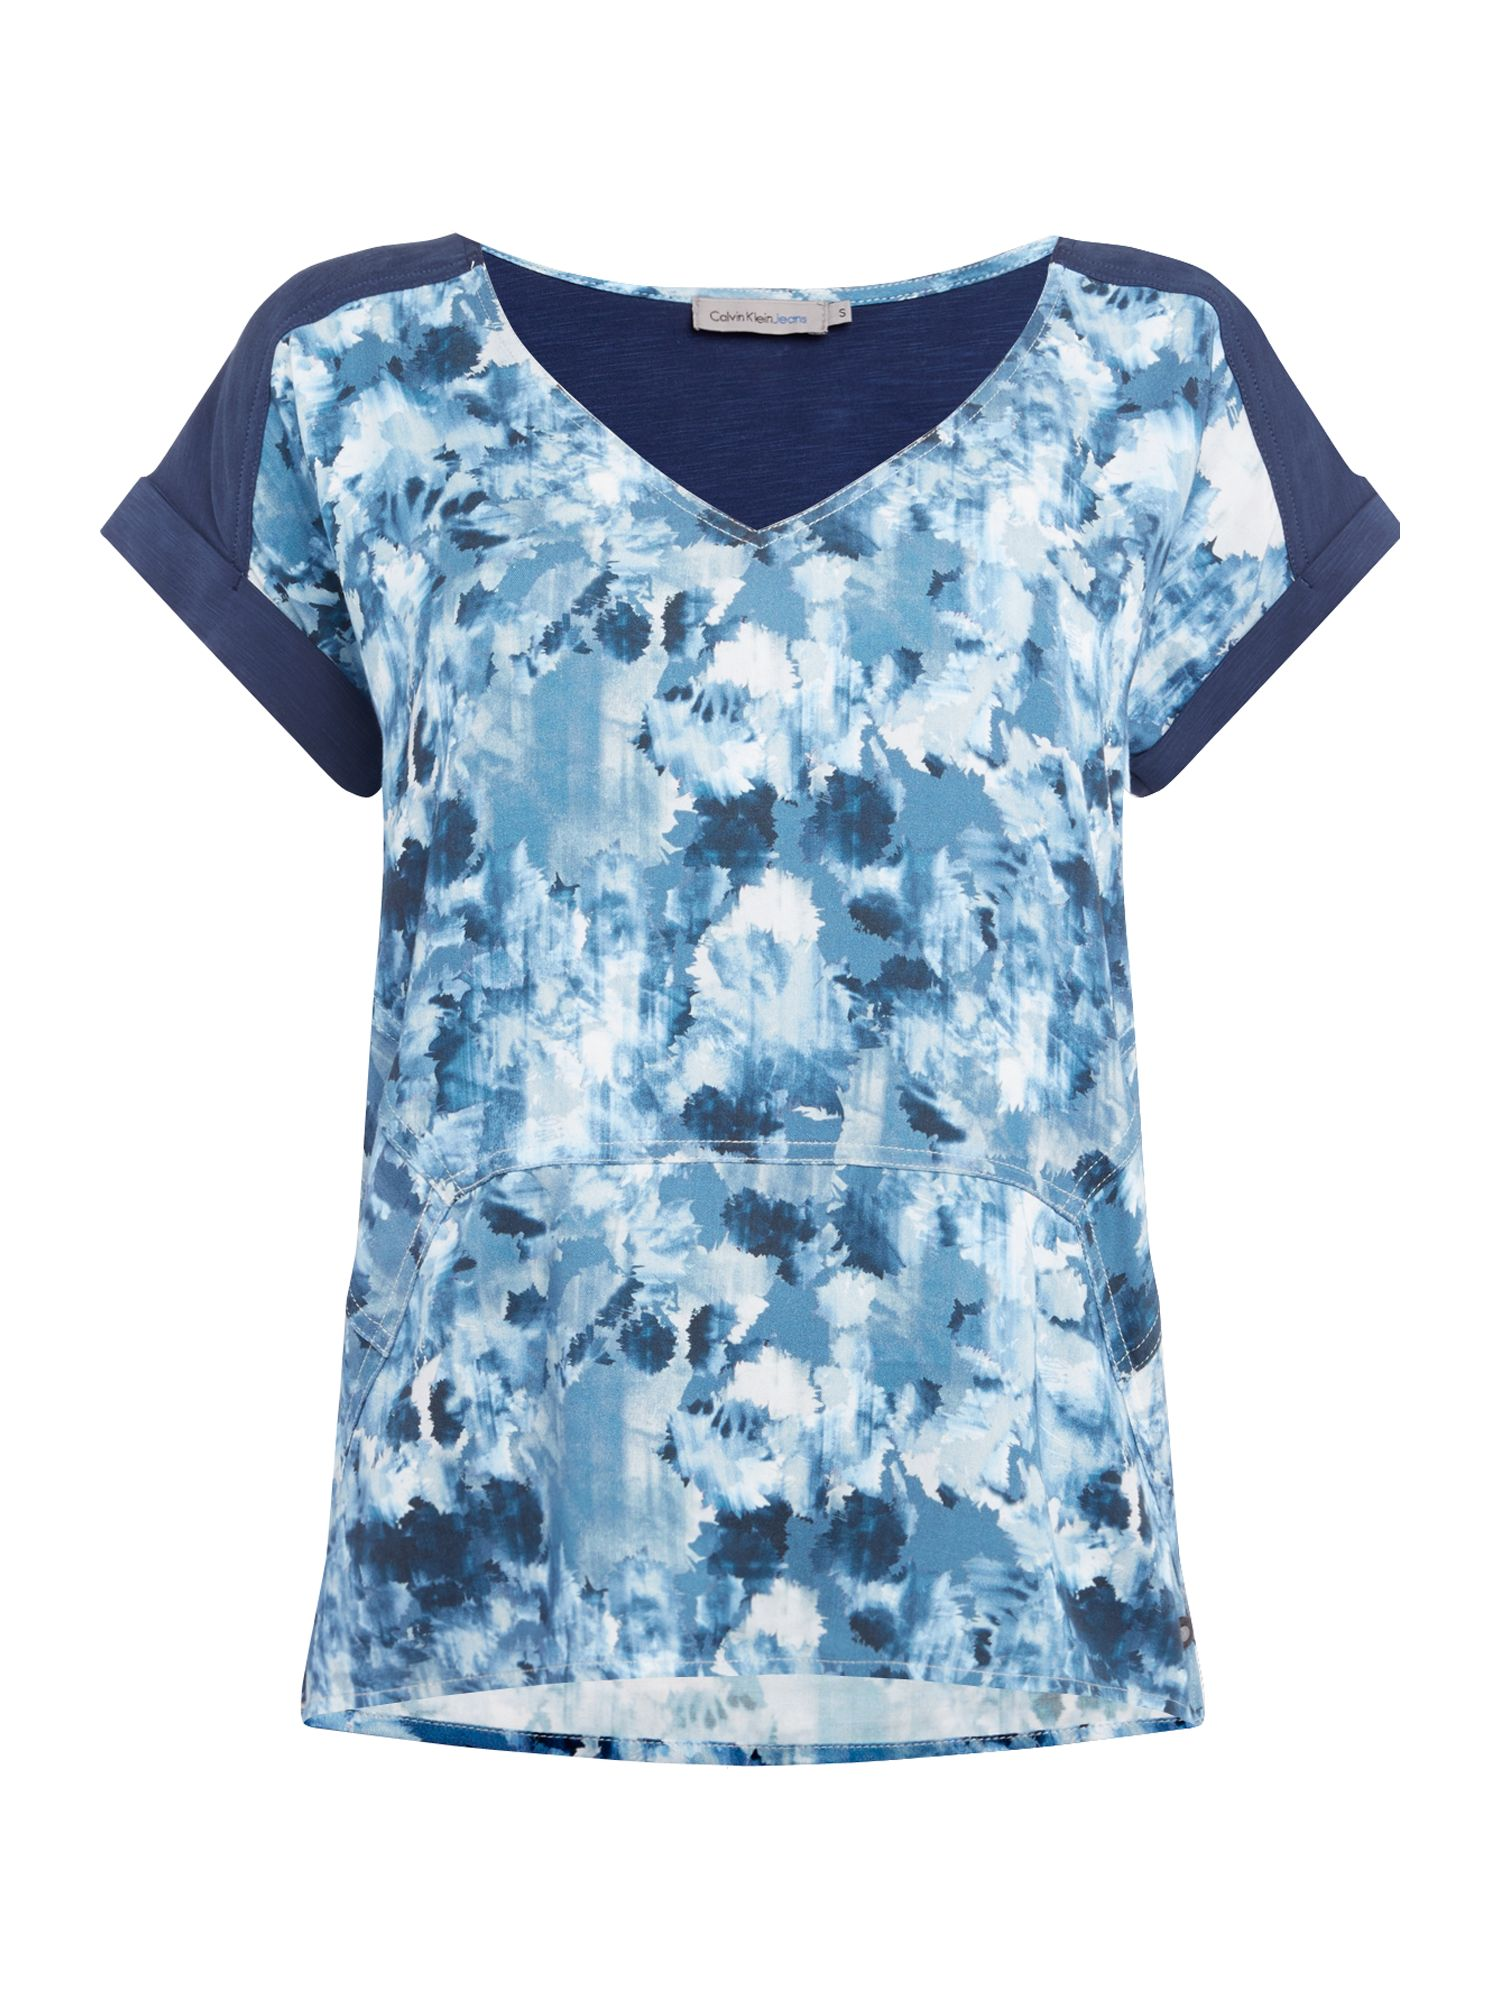 Calvin Klein Casual woven top in indigo flower aop, Blue